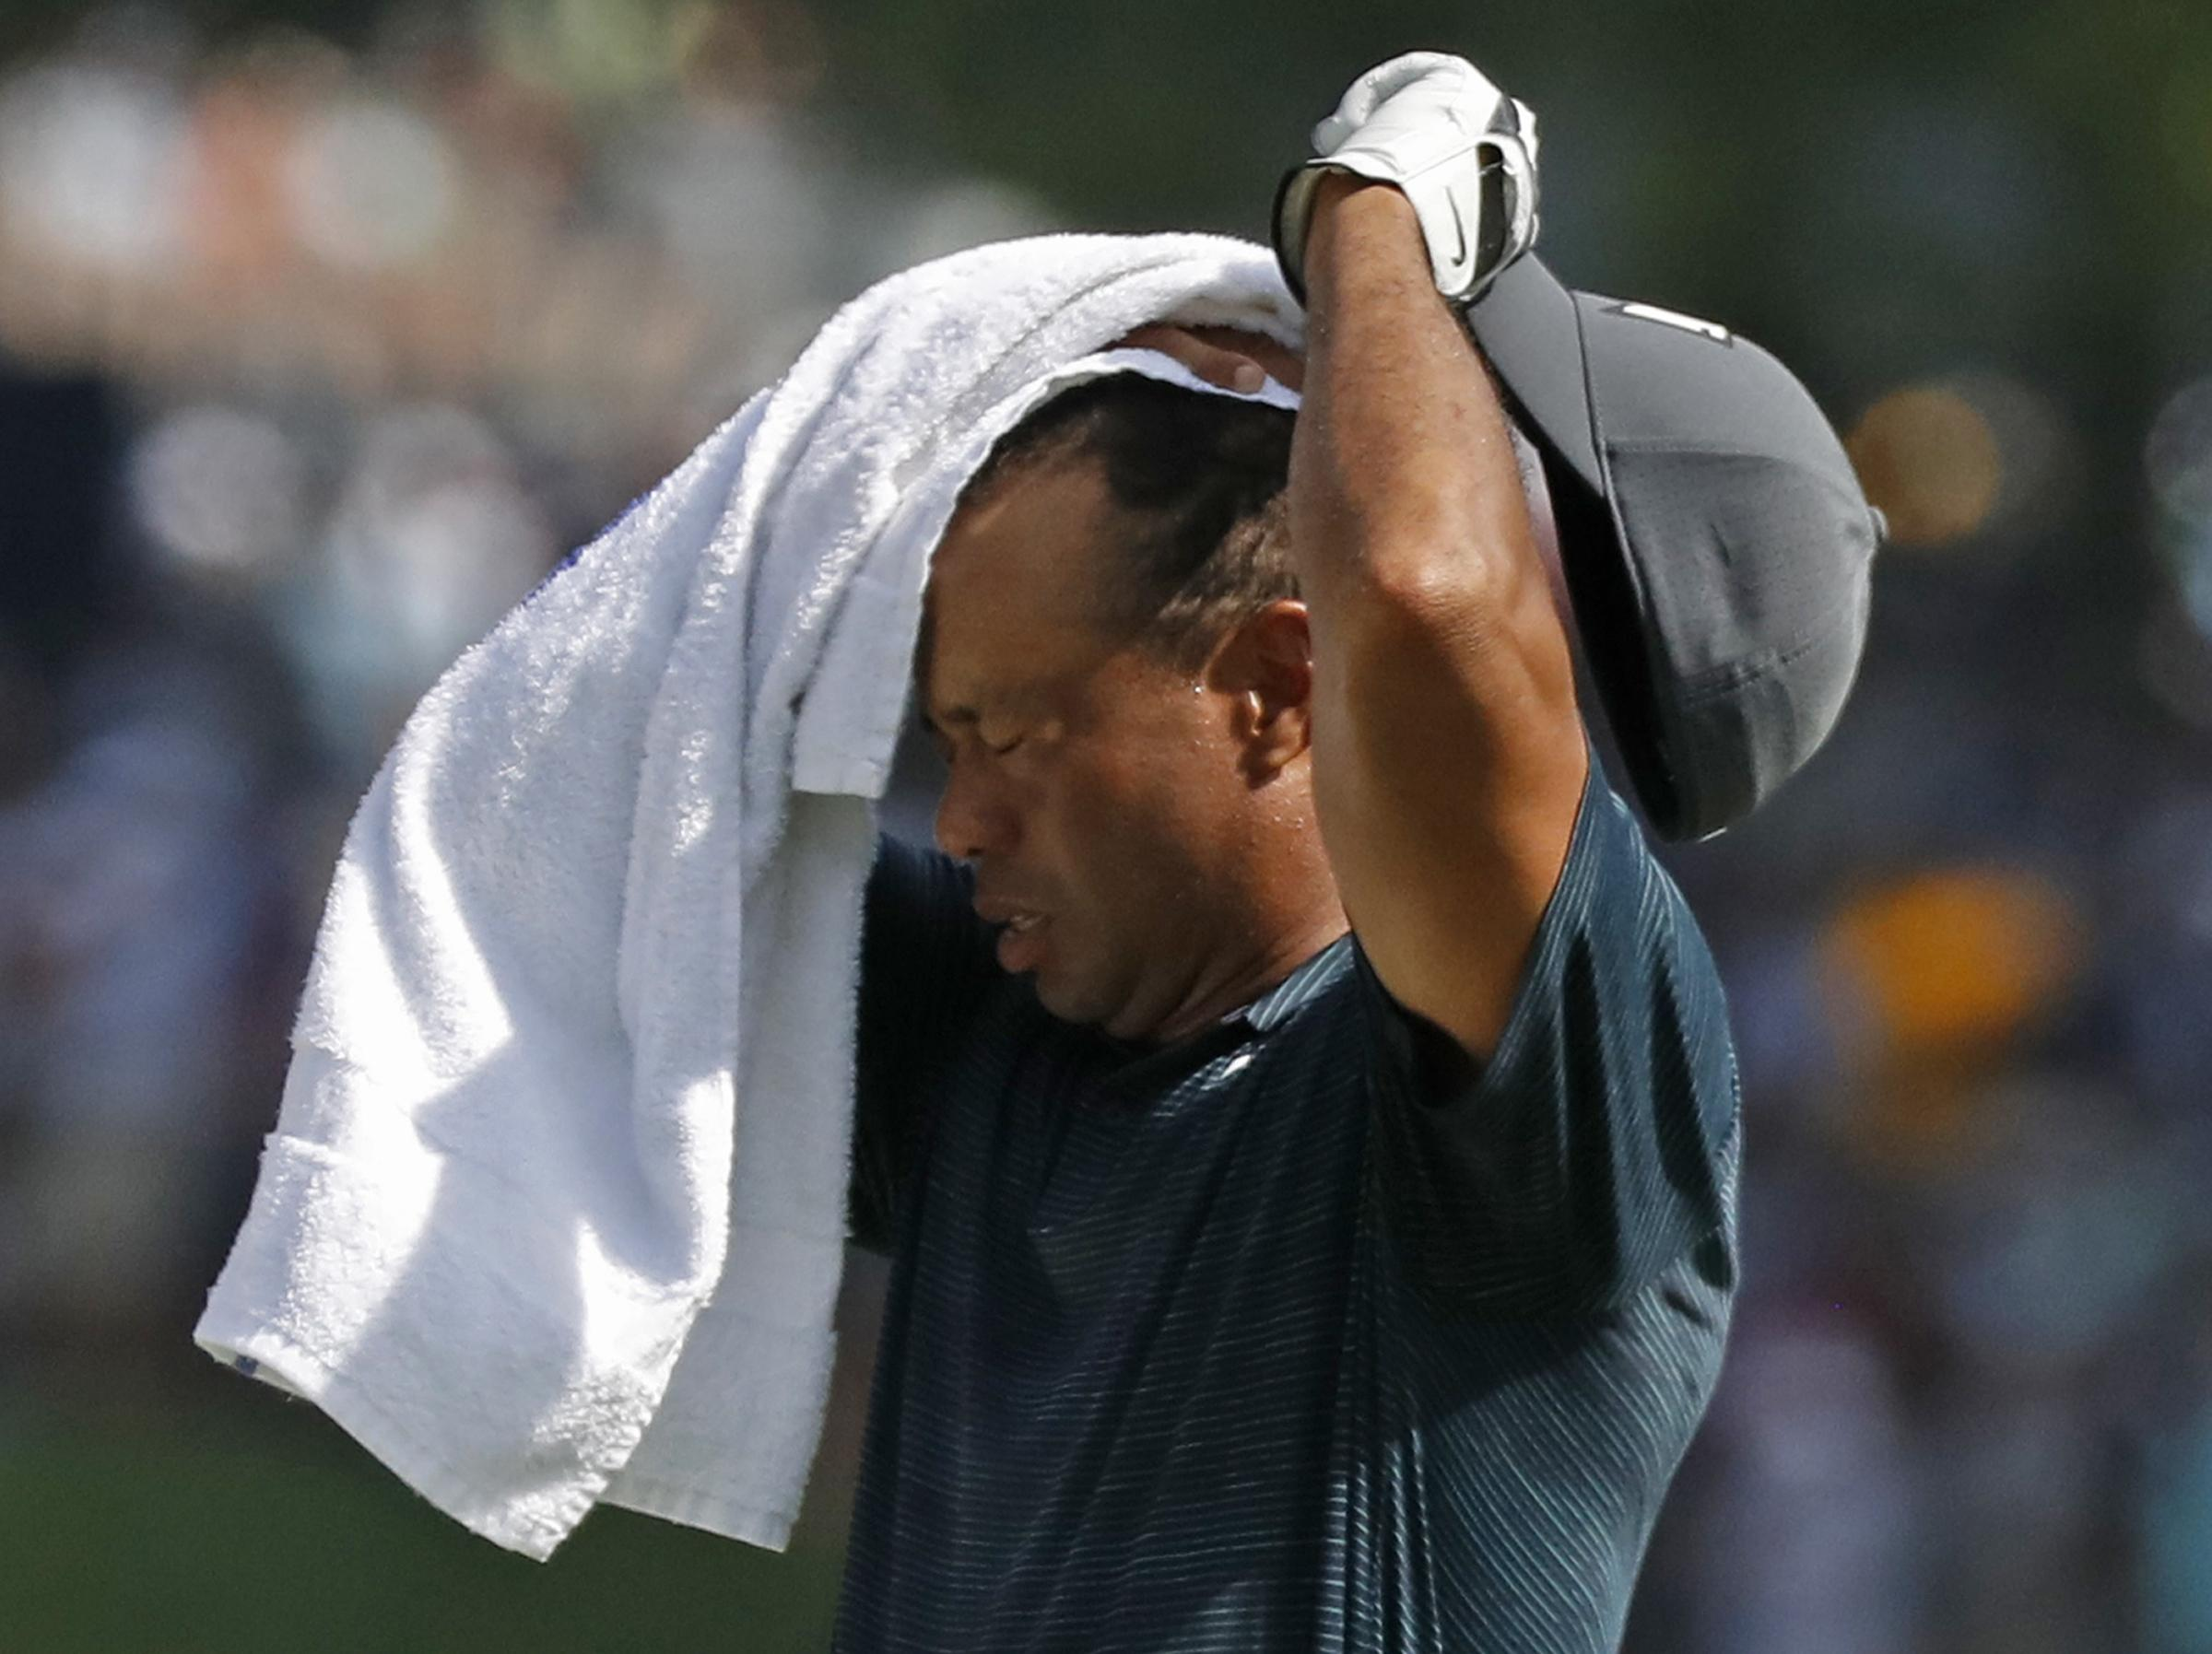 Tiger Woods played better after changing his shirt, firing a level par round of 70